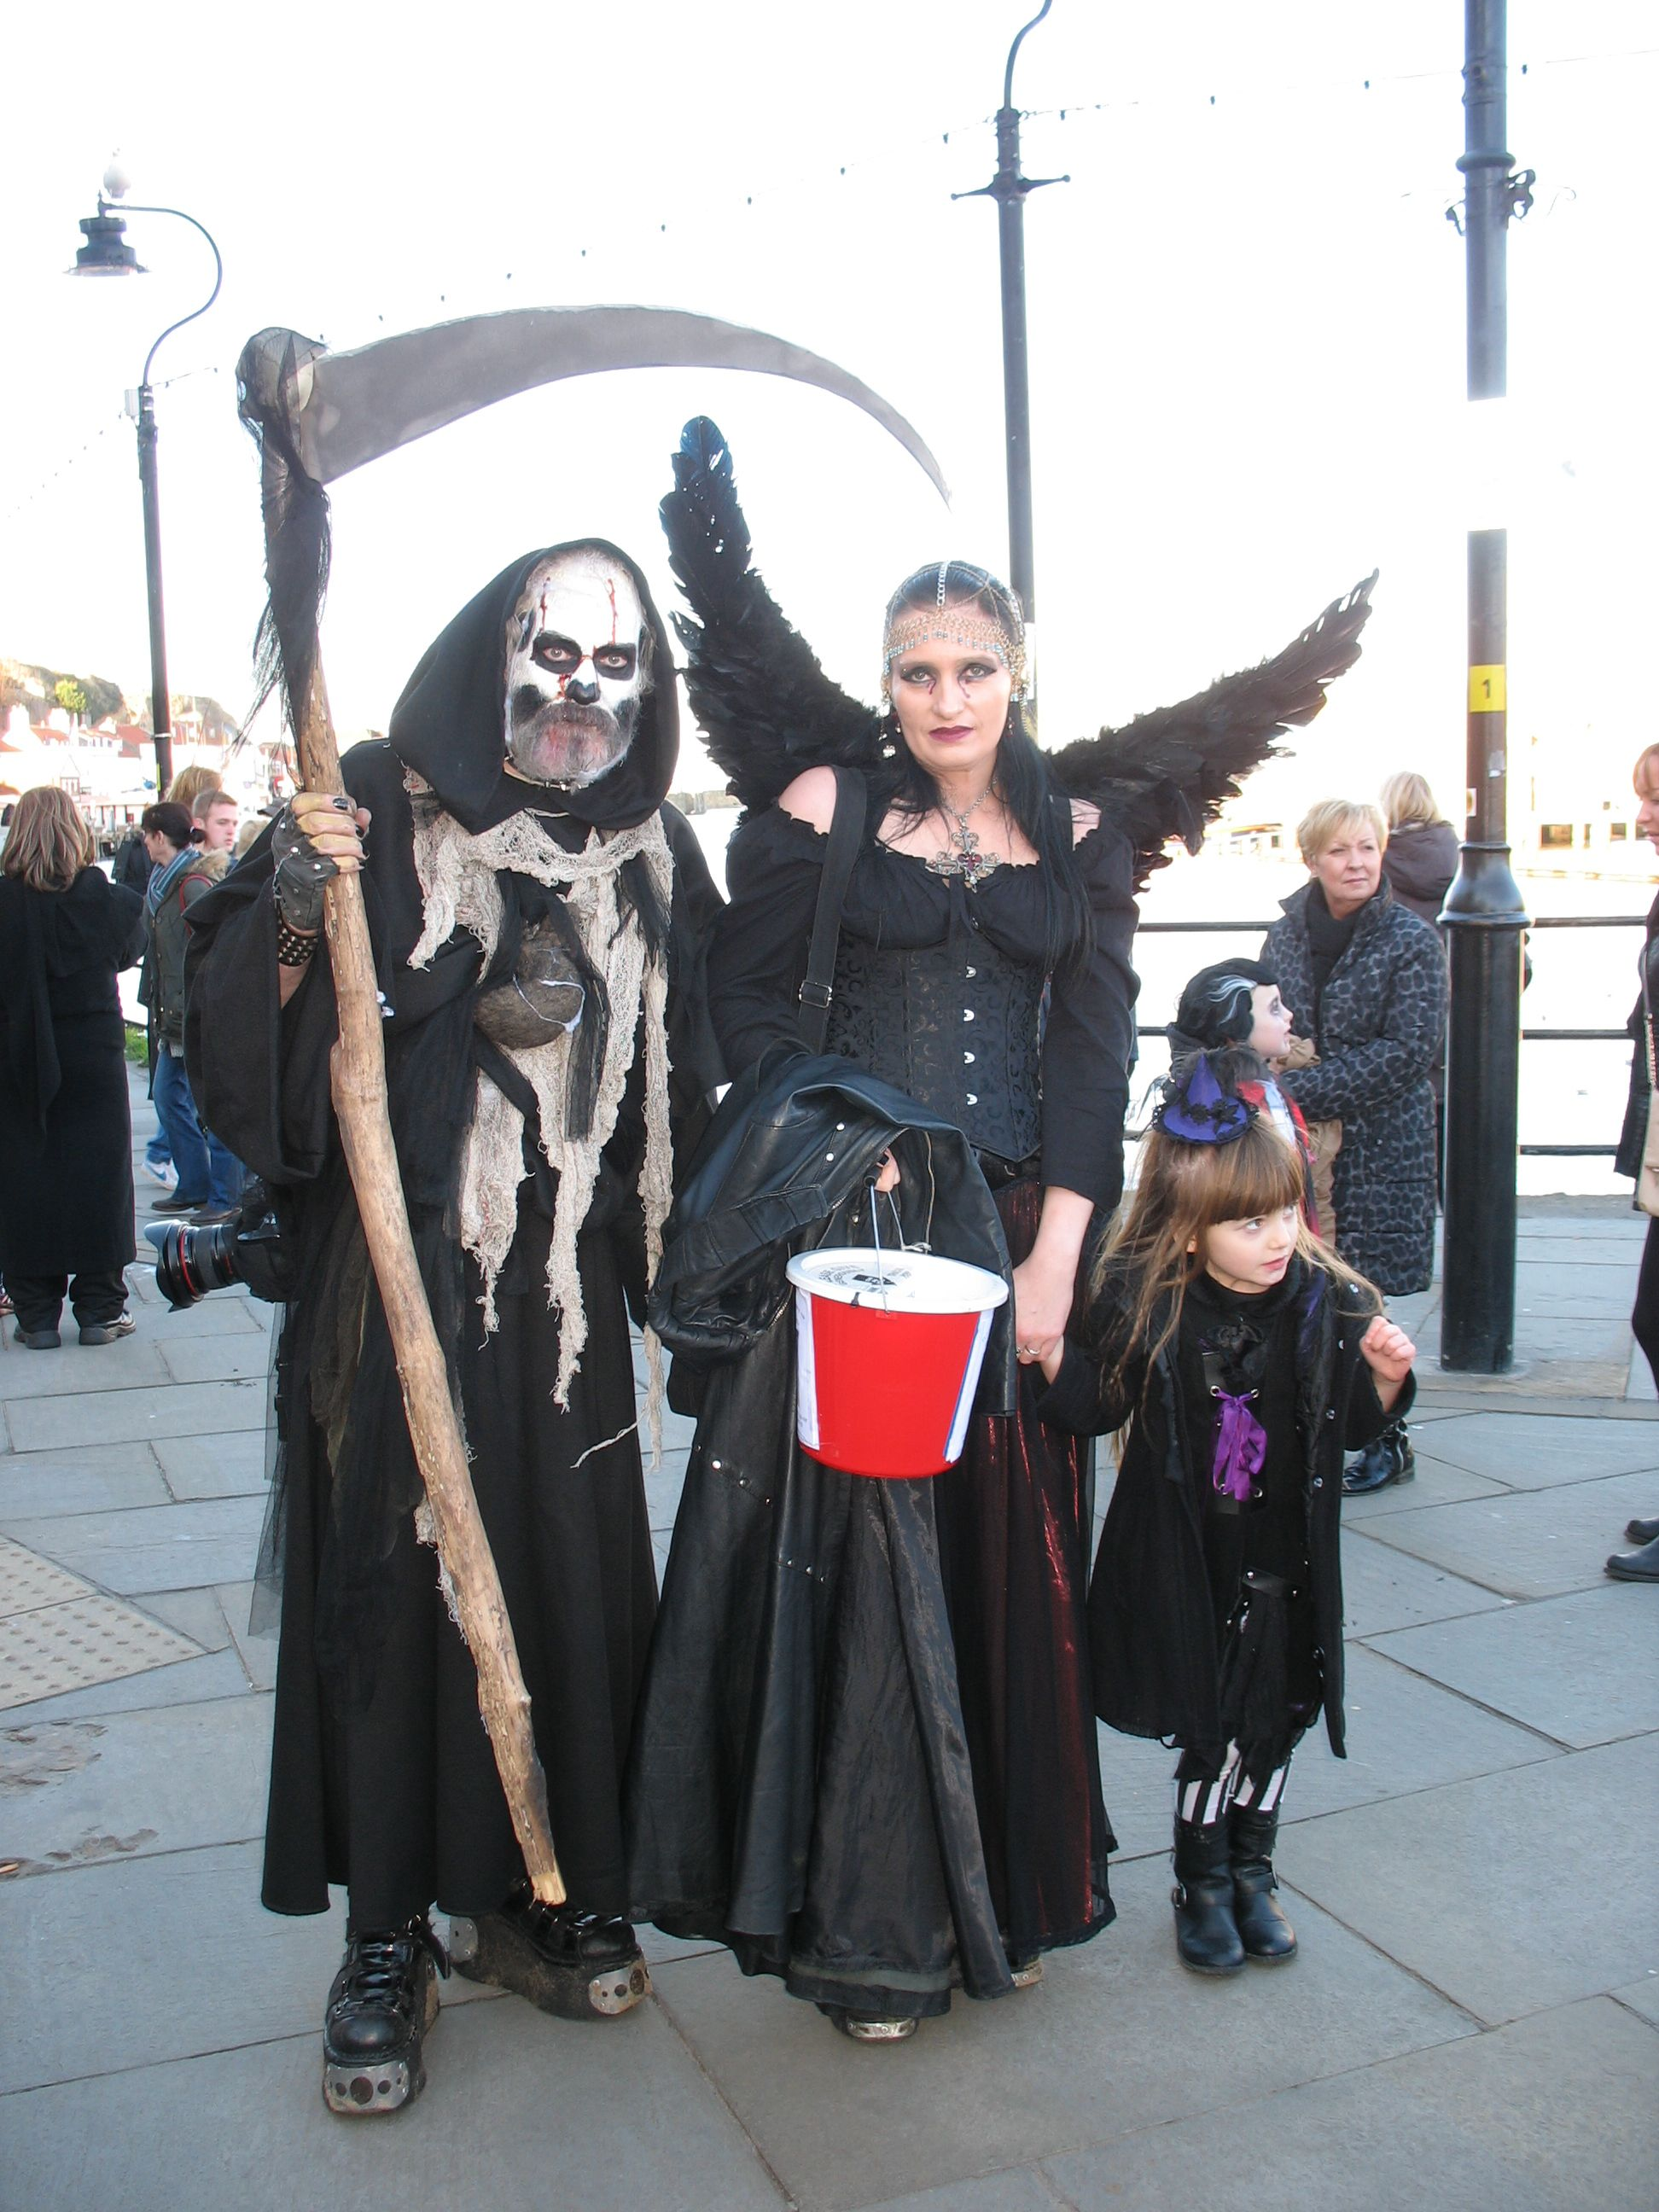 Whitby Goth Weekend 2013